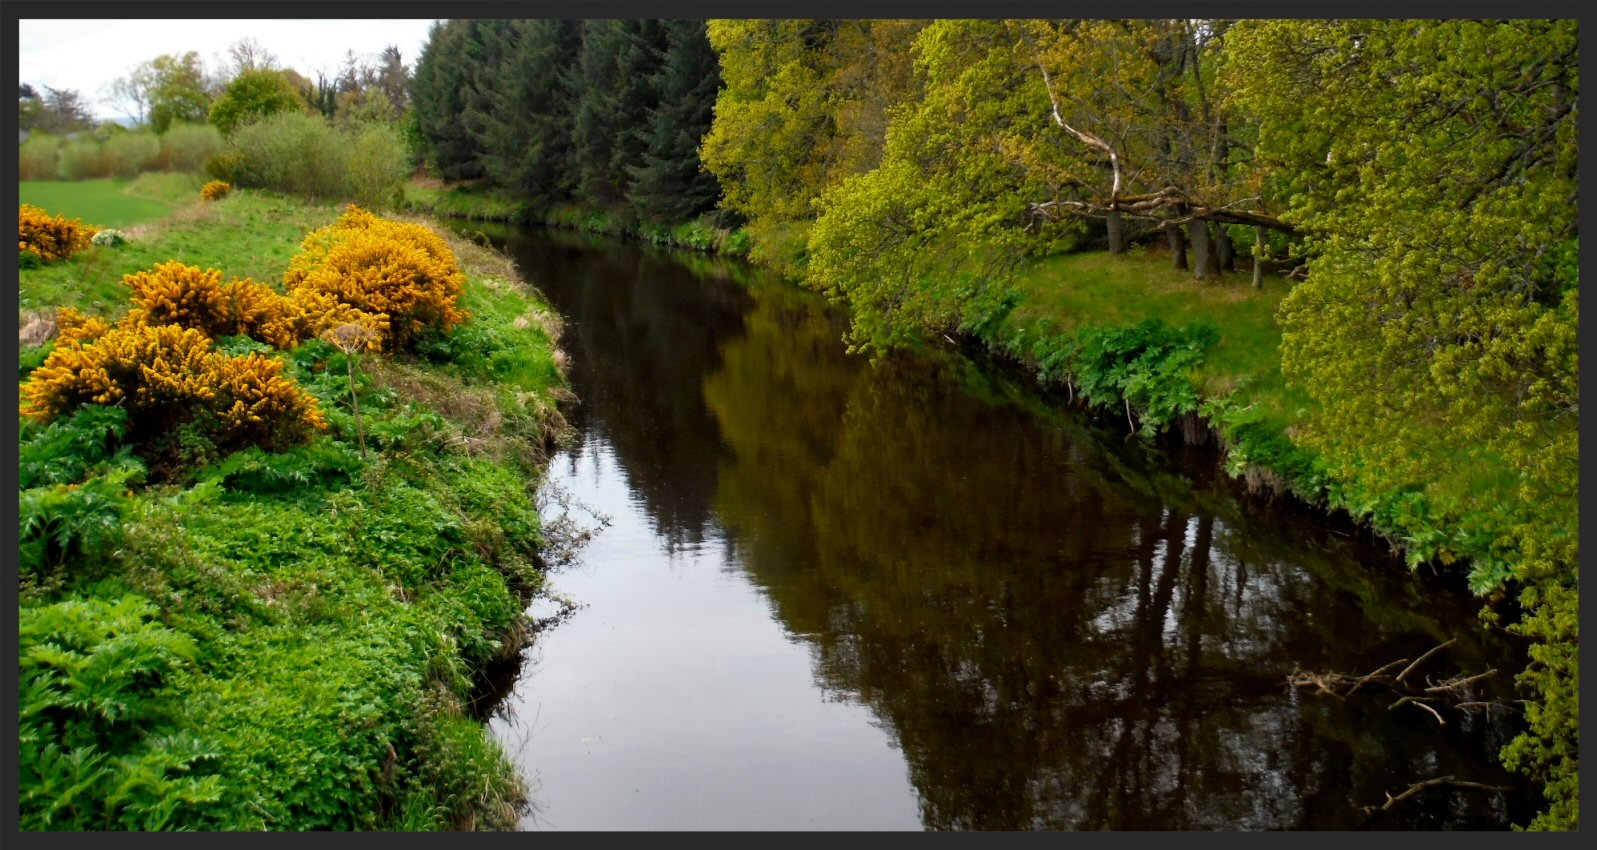 The Lossie River. Most of the contents of your Glen Moray originated here.